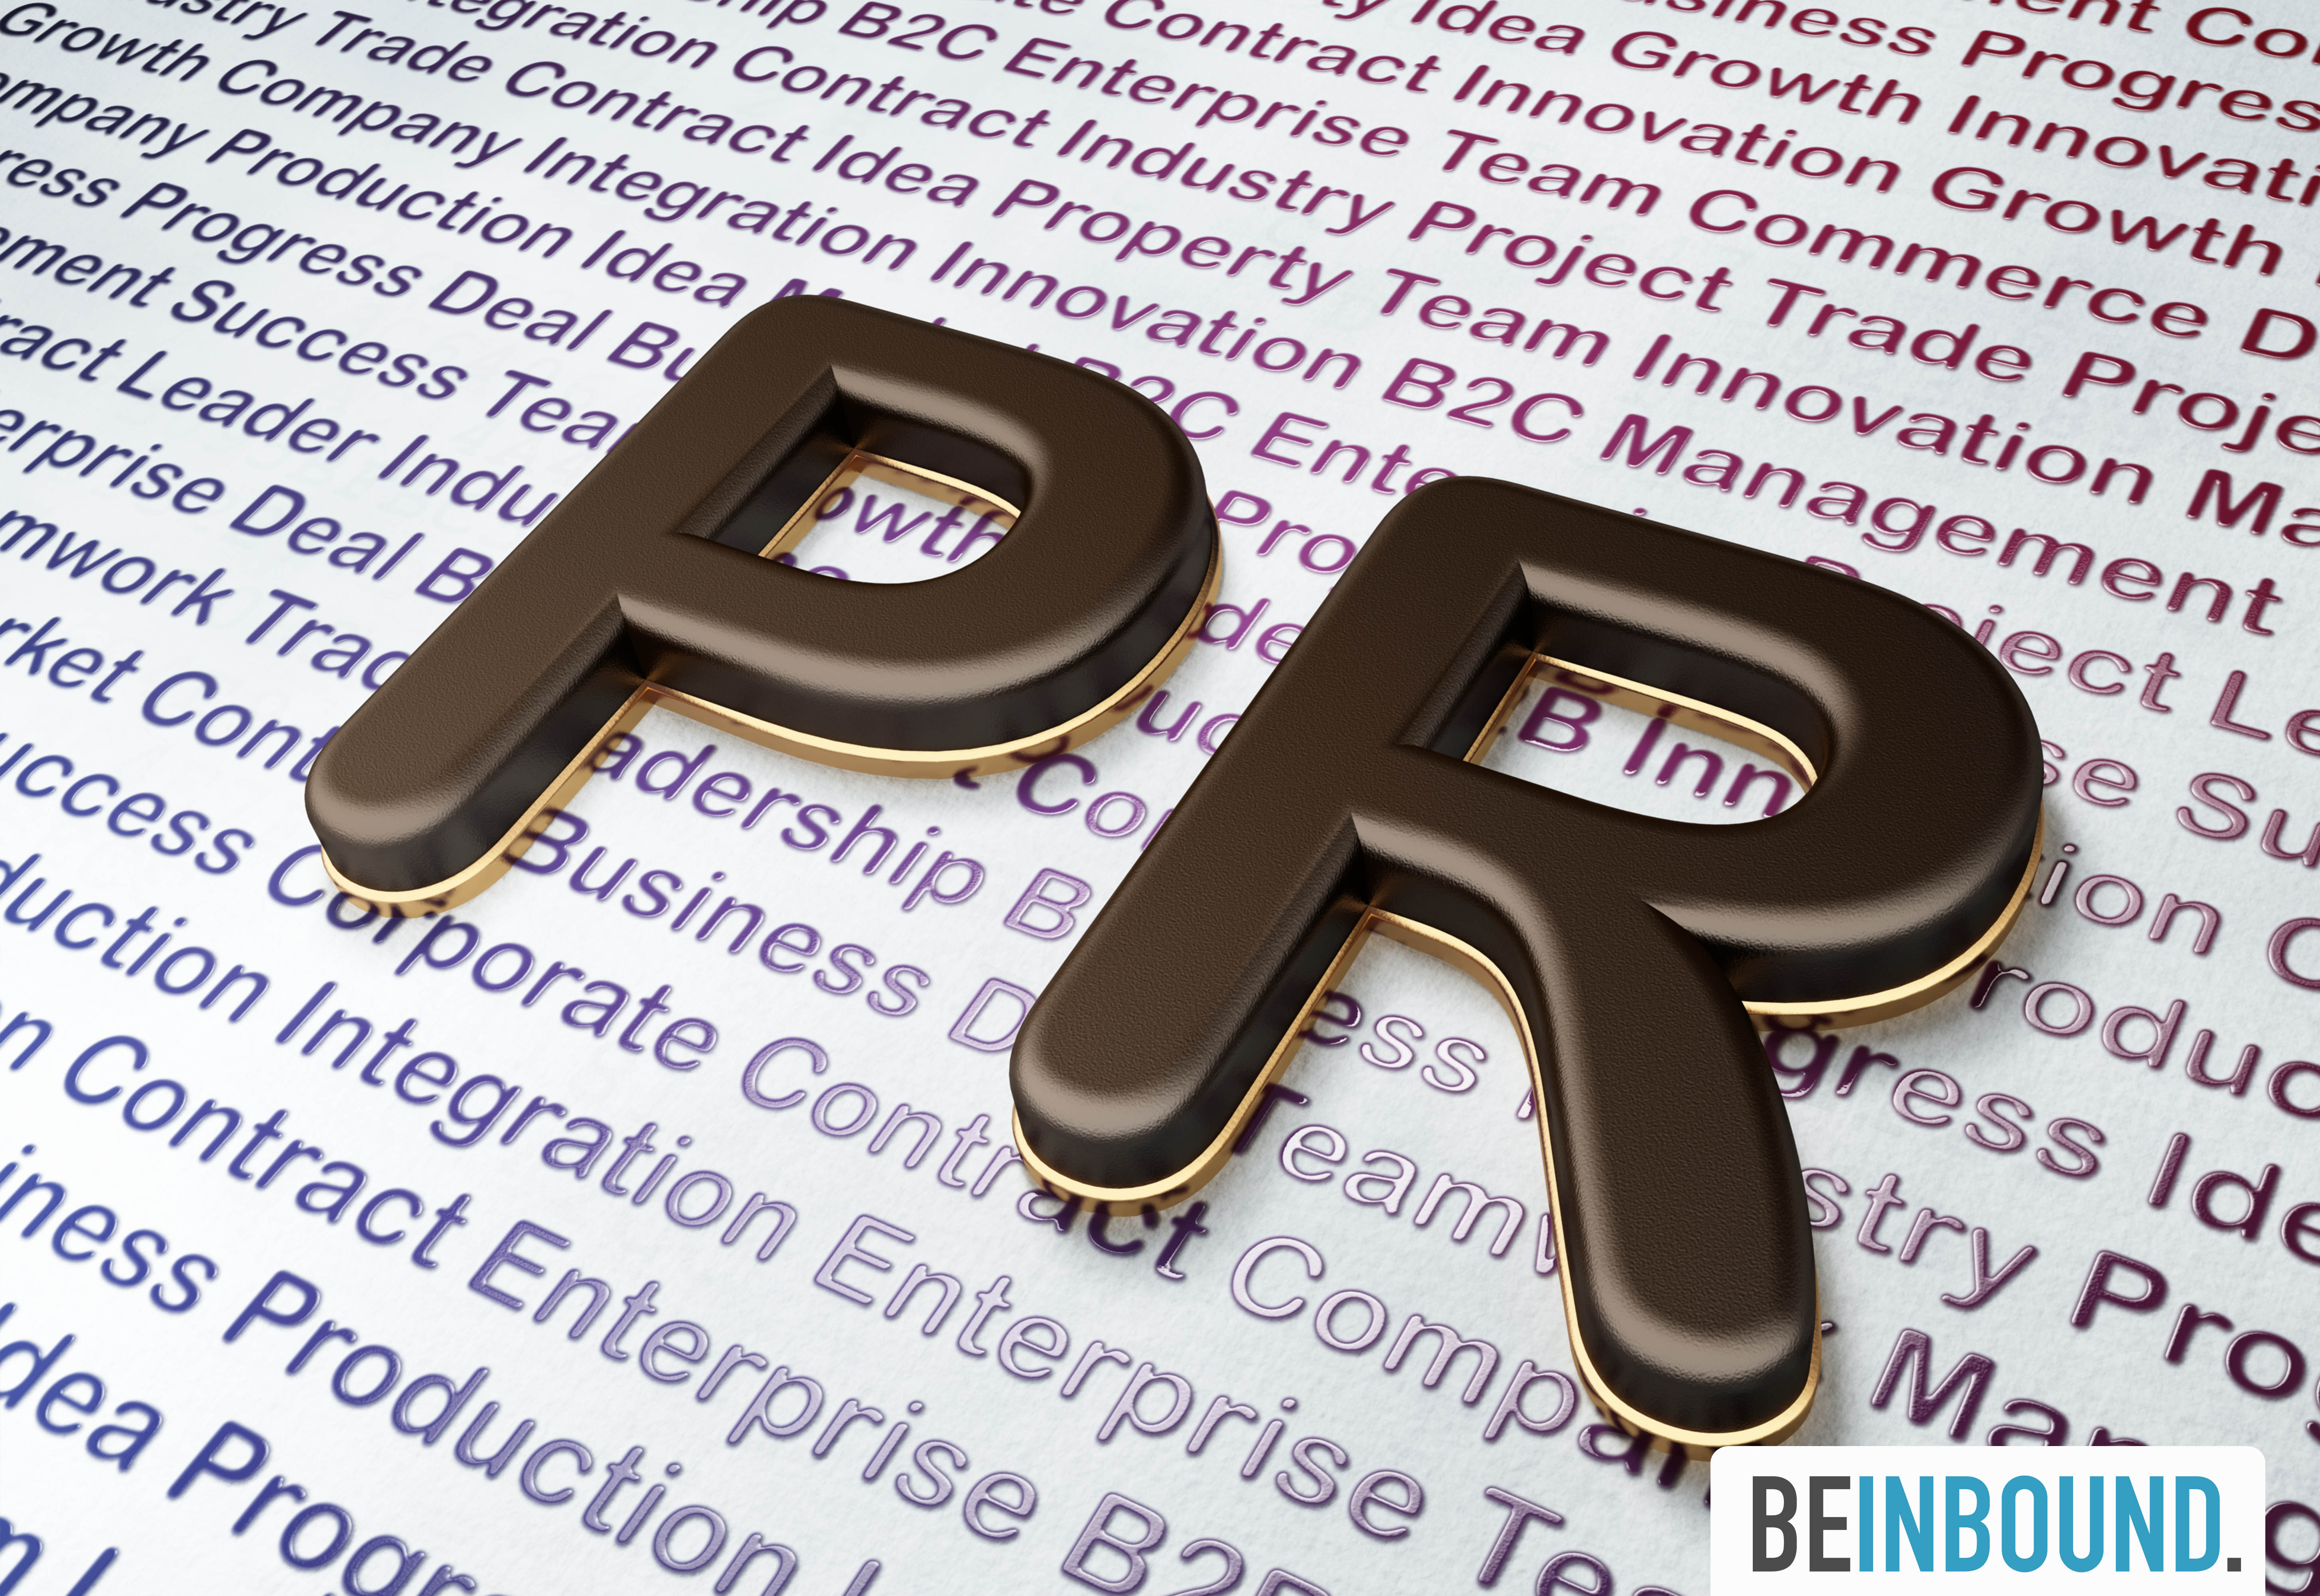 Are_Inbound_Marketing_and_Digital_PR_one_and_the_same